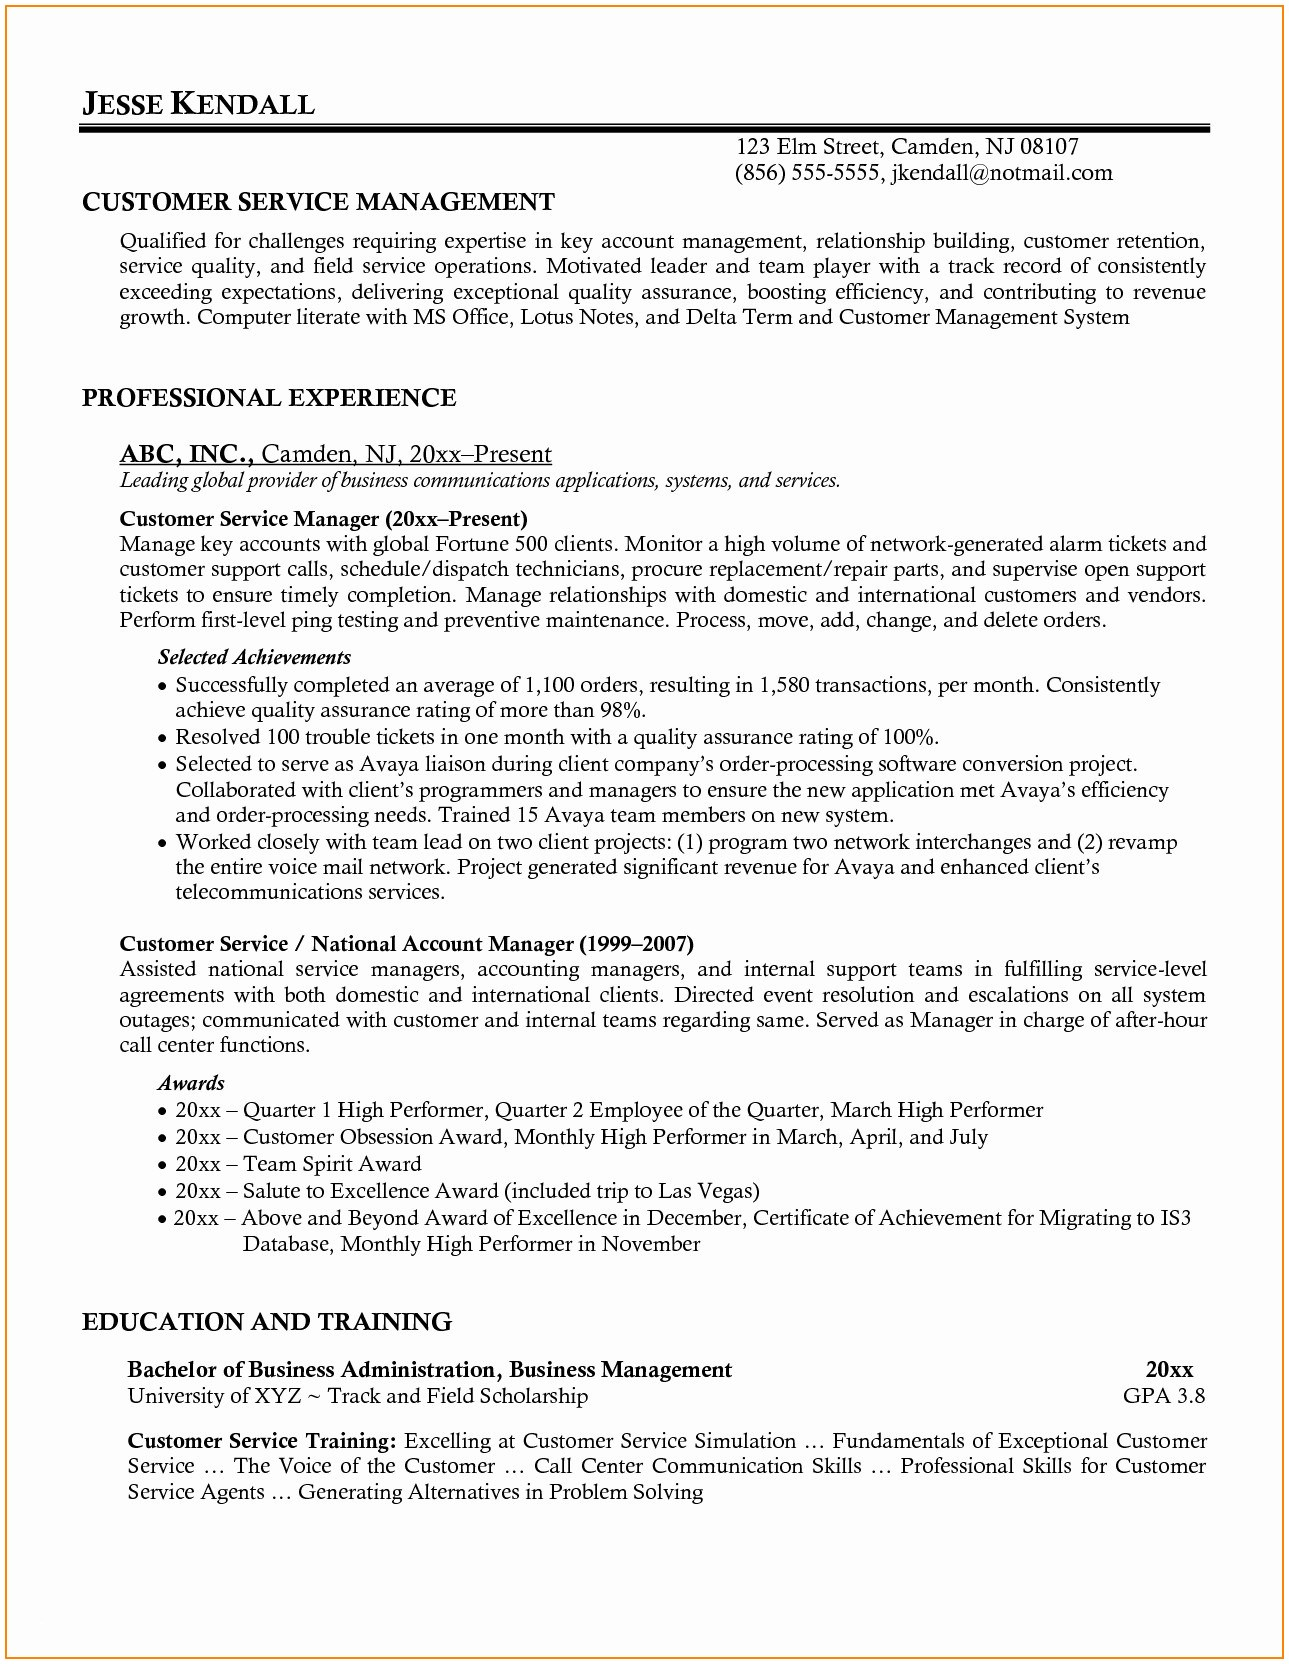 Food Service Manager Resume - Customer Service Manager Resume Sample